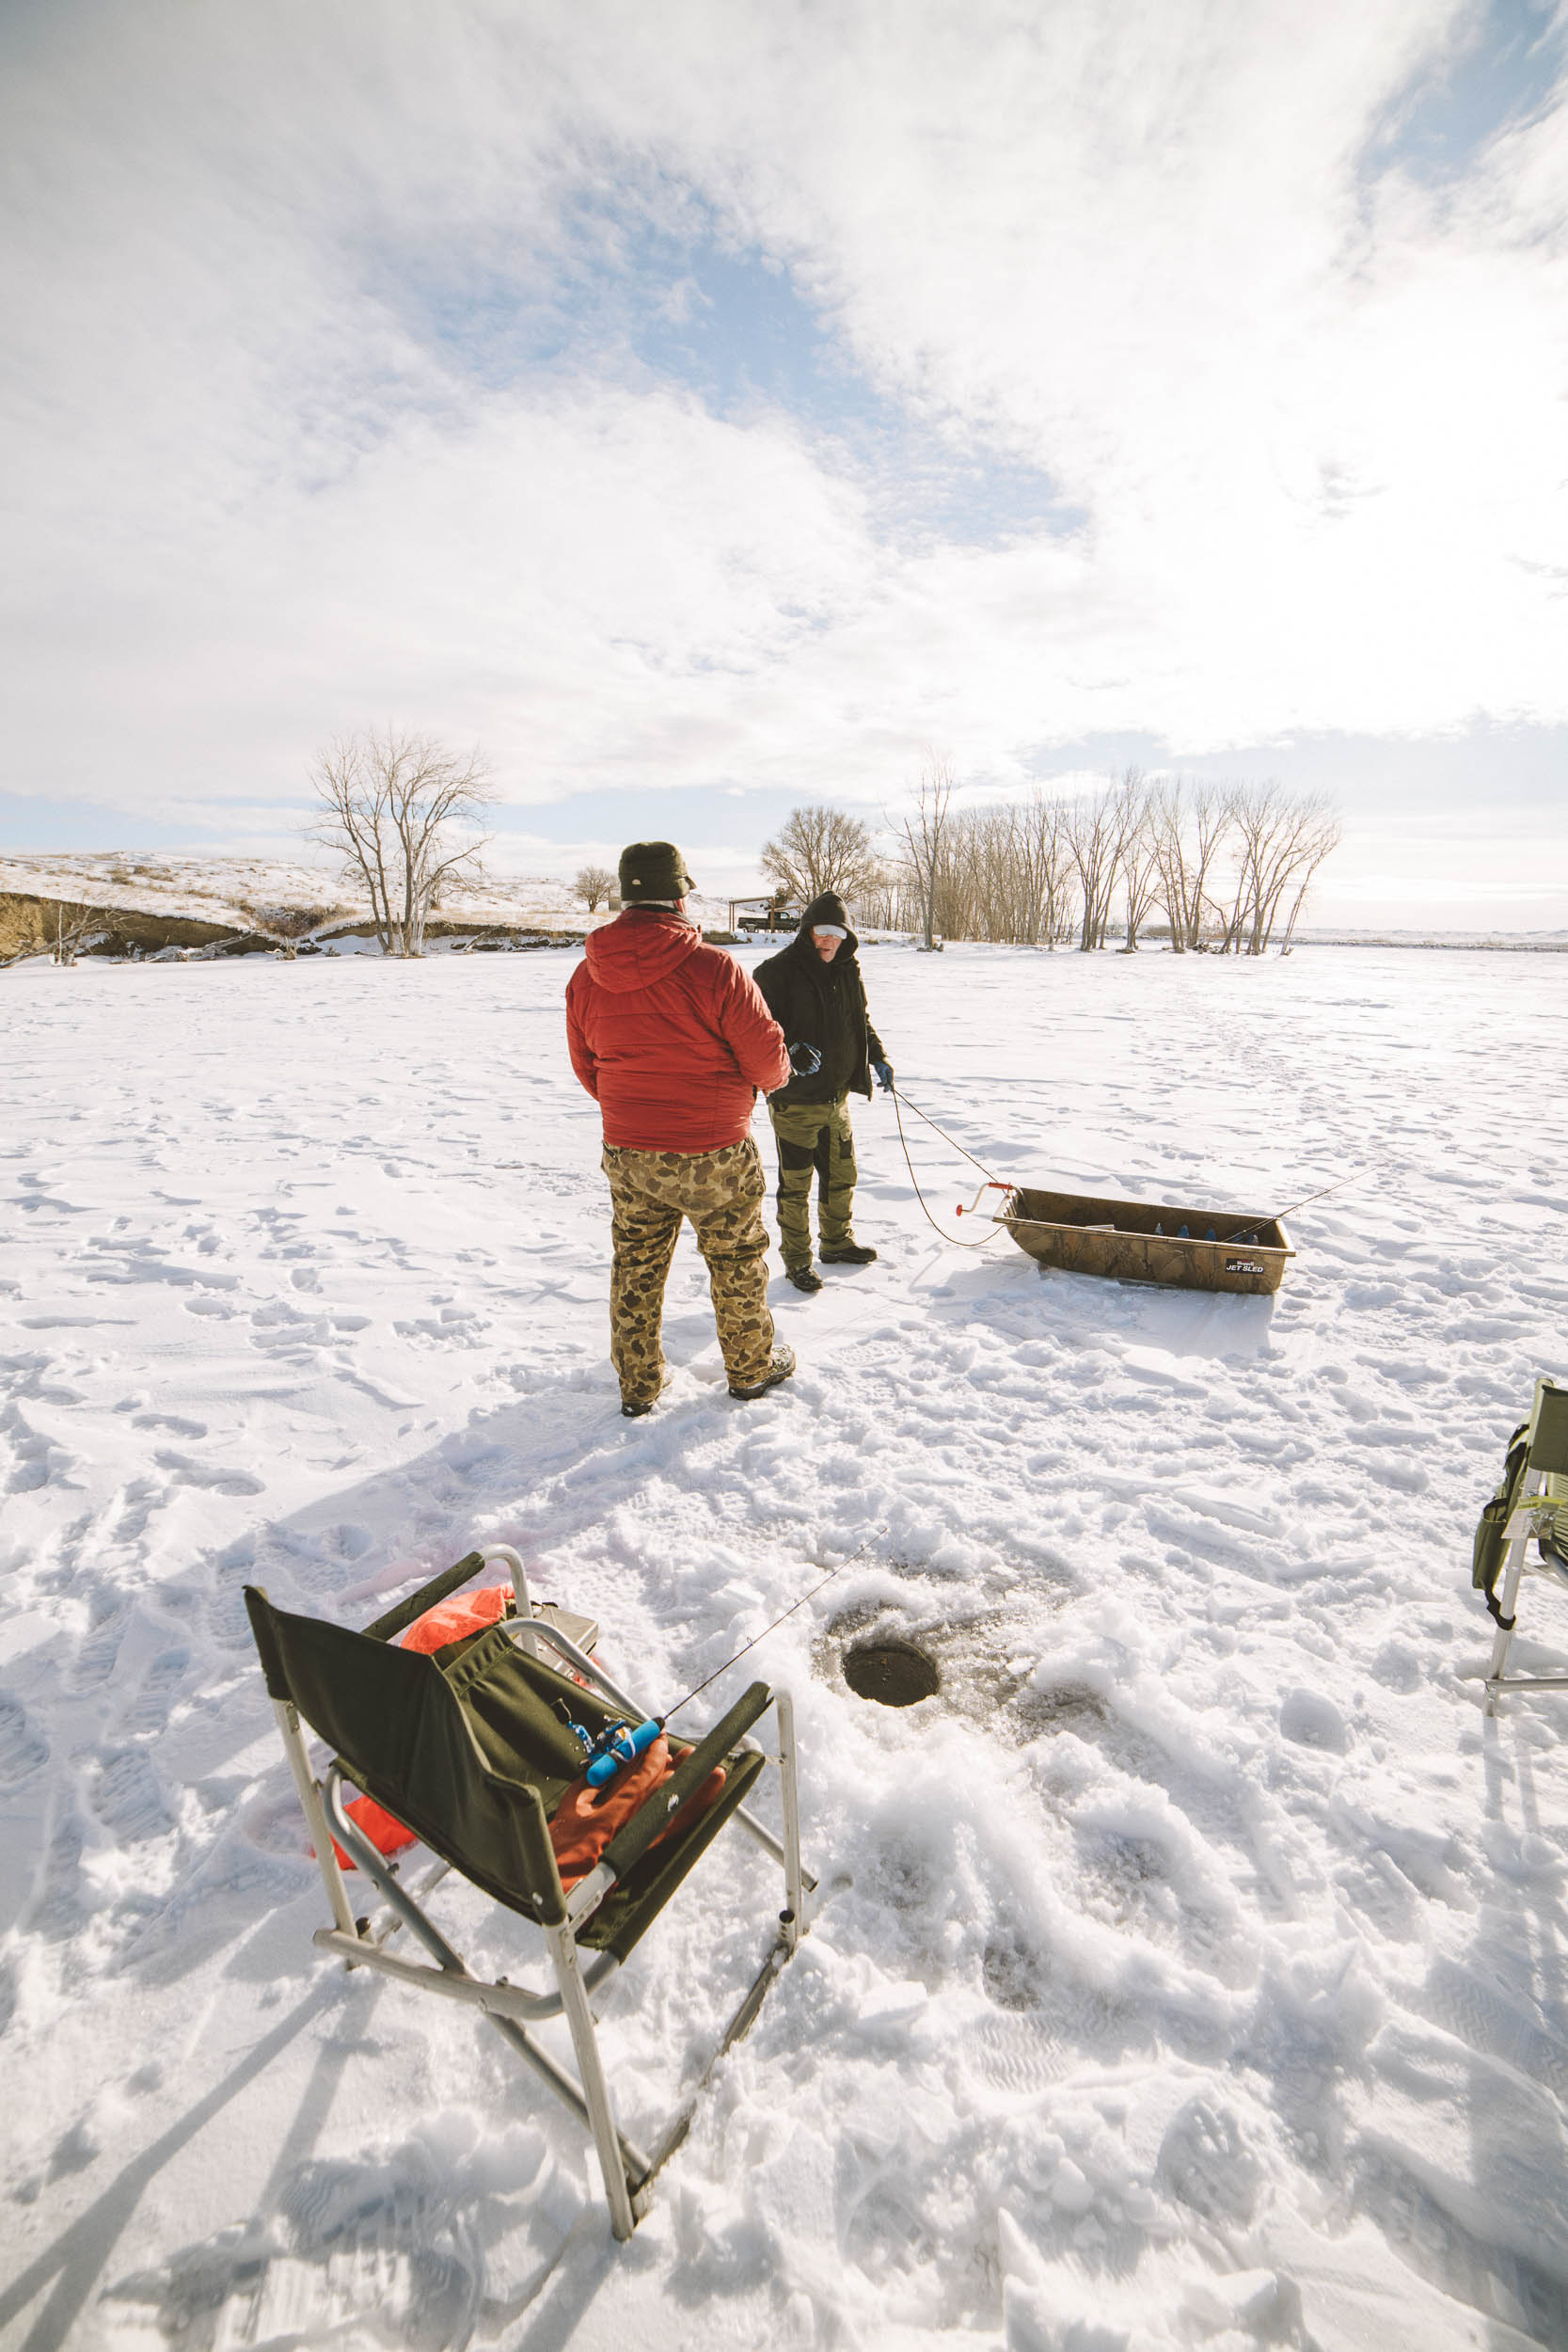 Ice fishing at Petrolia Lake near Winnett, Montana. Beautiful photos takes at Sunrise.